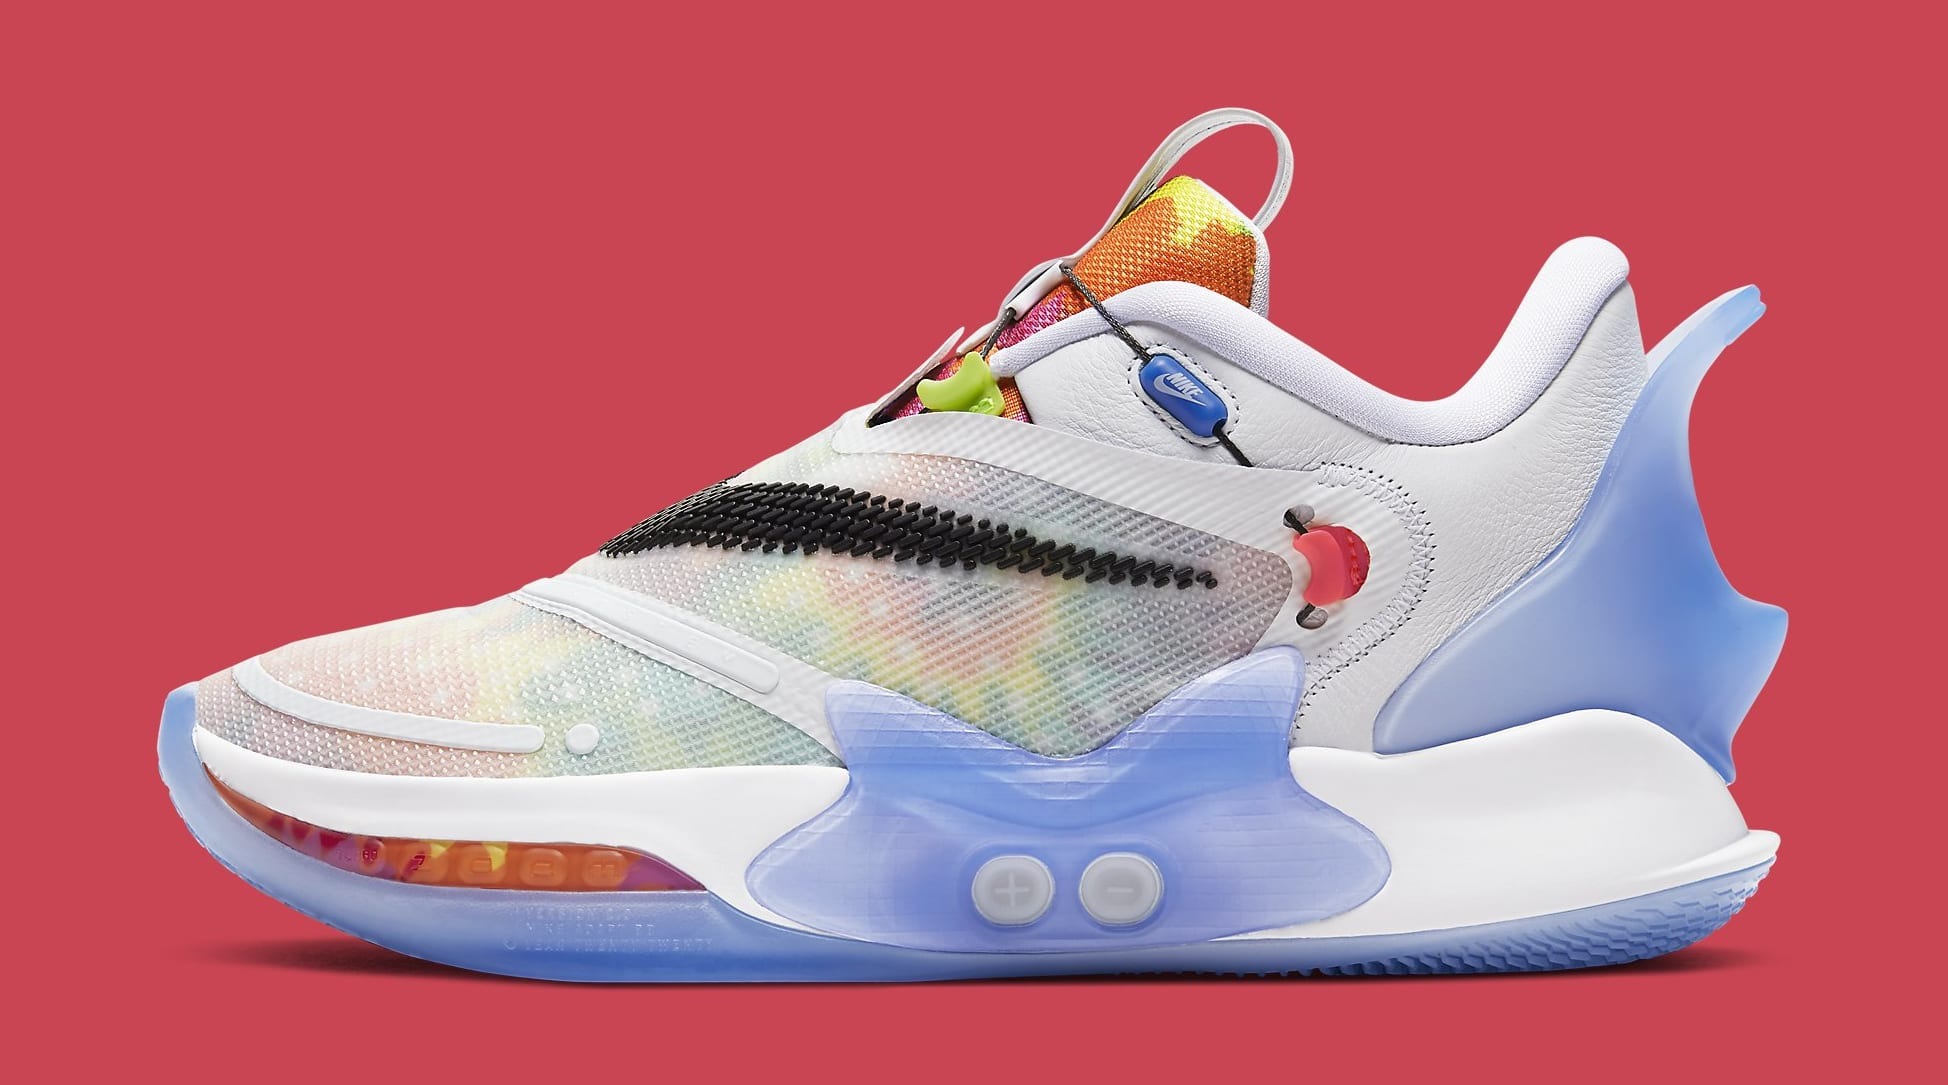 Nike Adapt BB 2.0 'Tie-Dye' BQ5397-100 Lateral